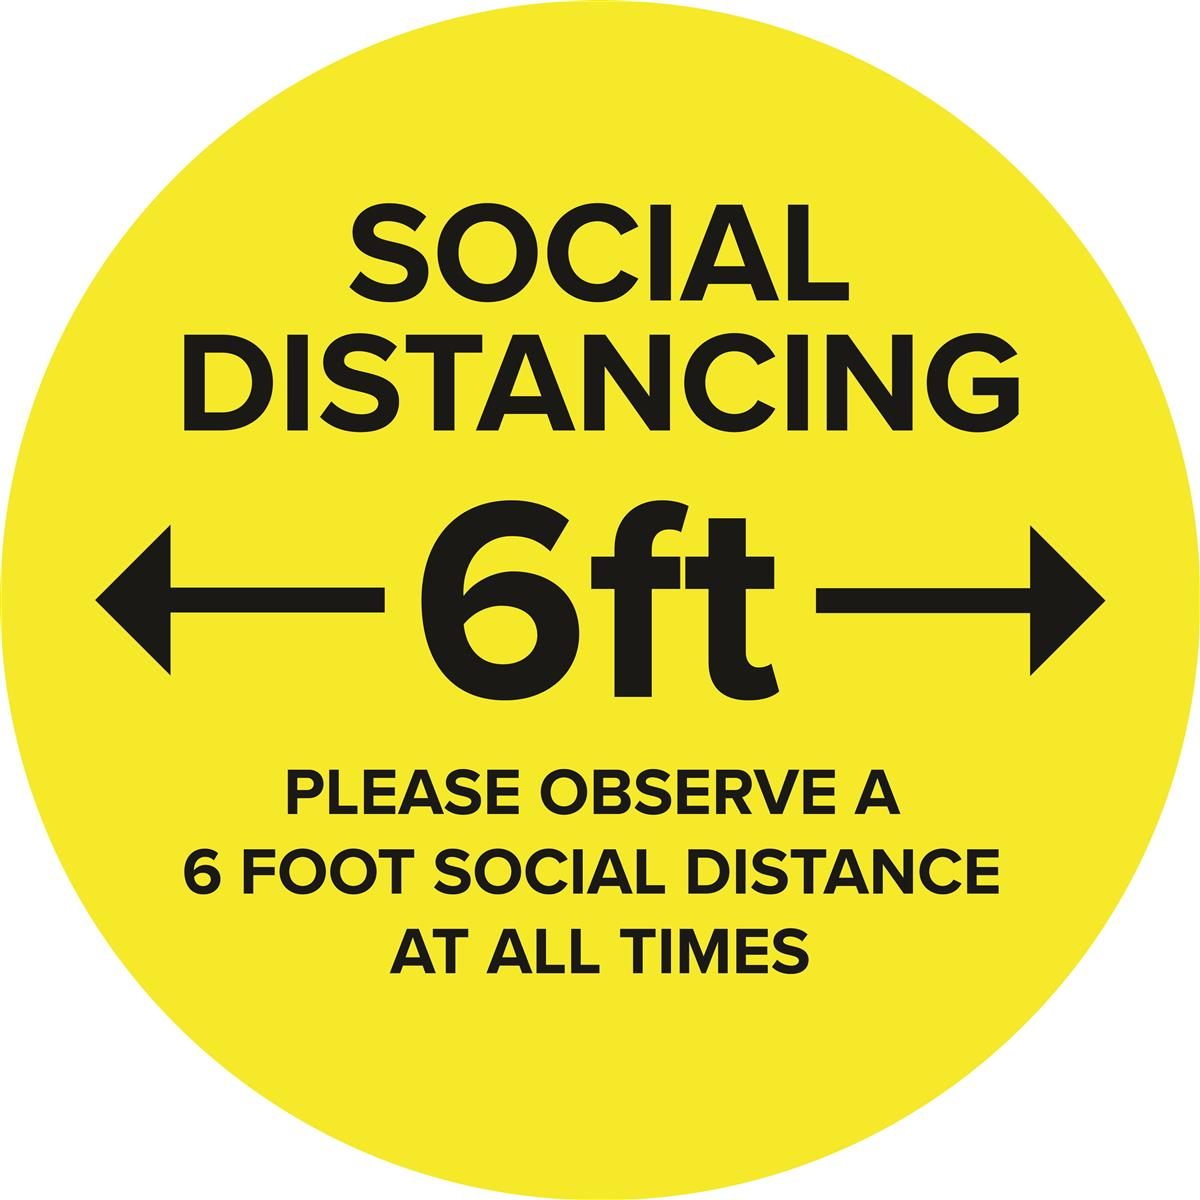 Yellow social distance vinyl decal with textured non-slip top surface